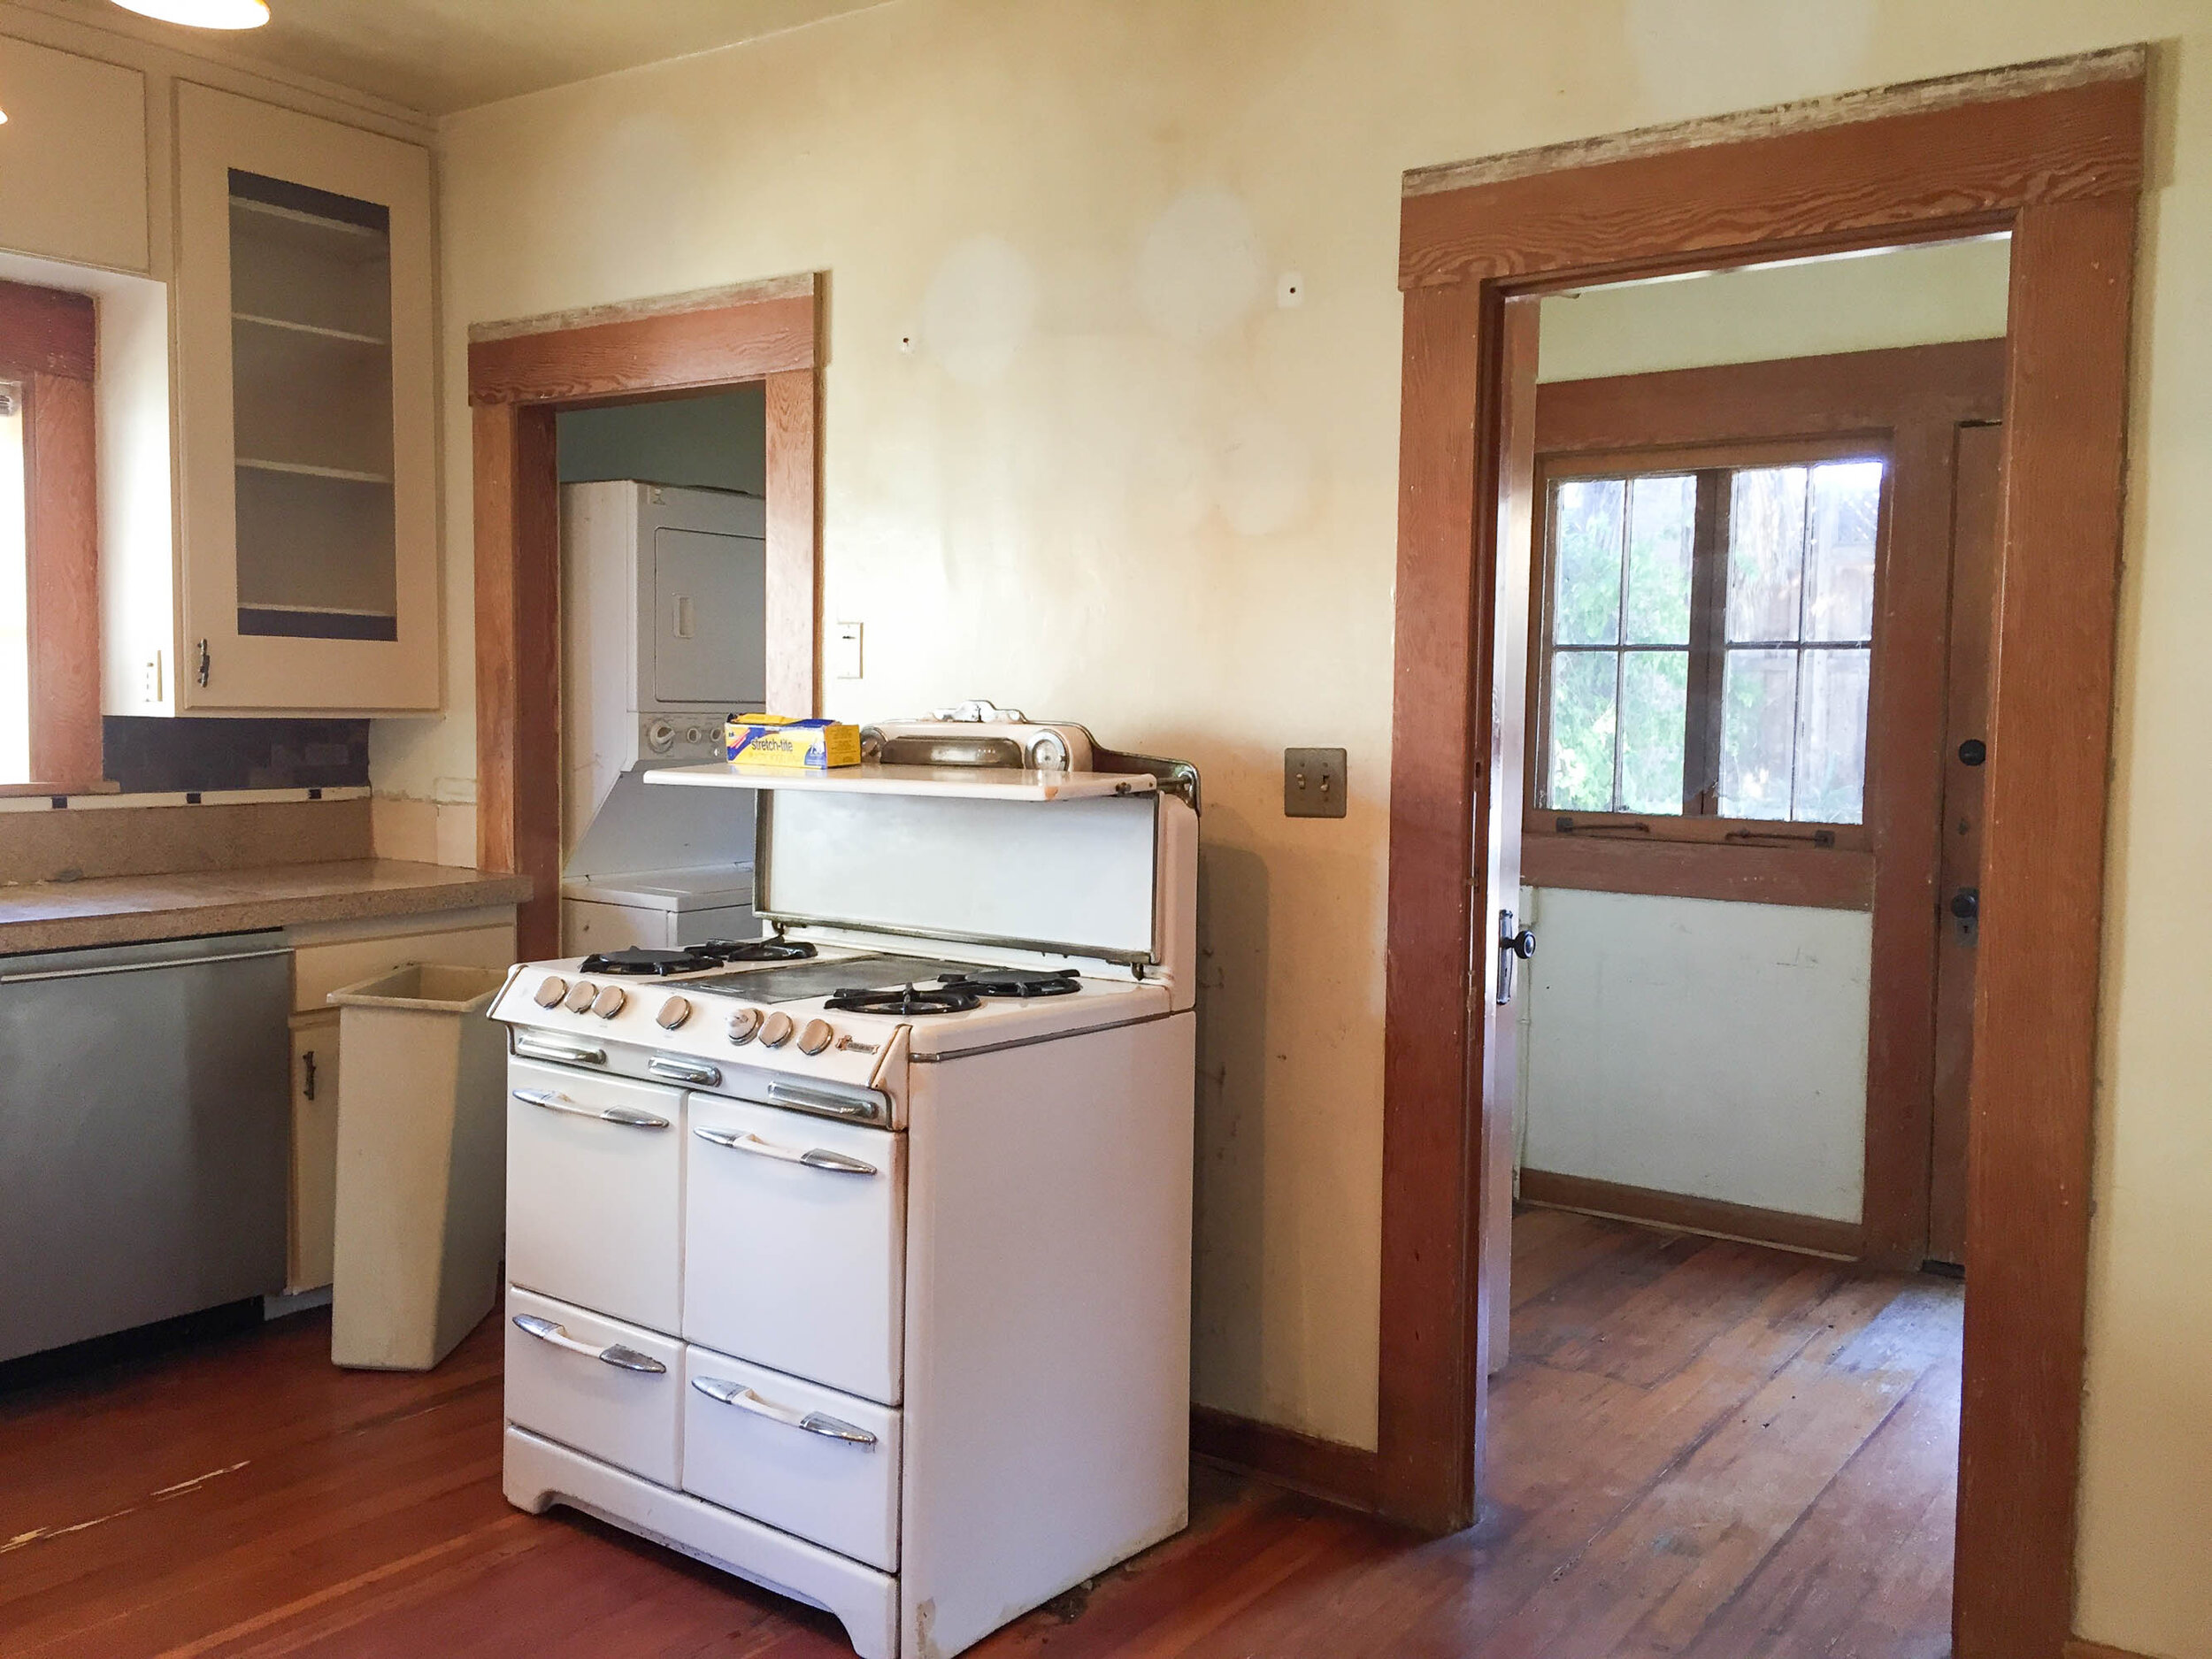 The Gold Hive $600 Kitchen Makeover Craftsman Bungalow Retro Style-4931.jpg